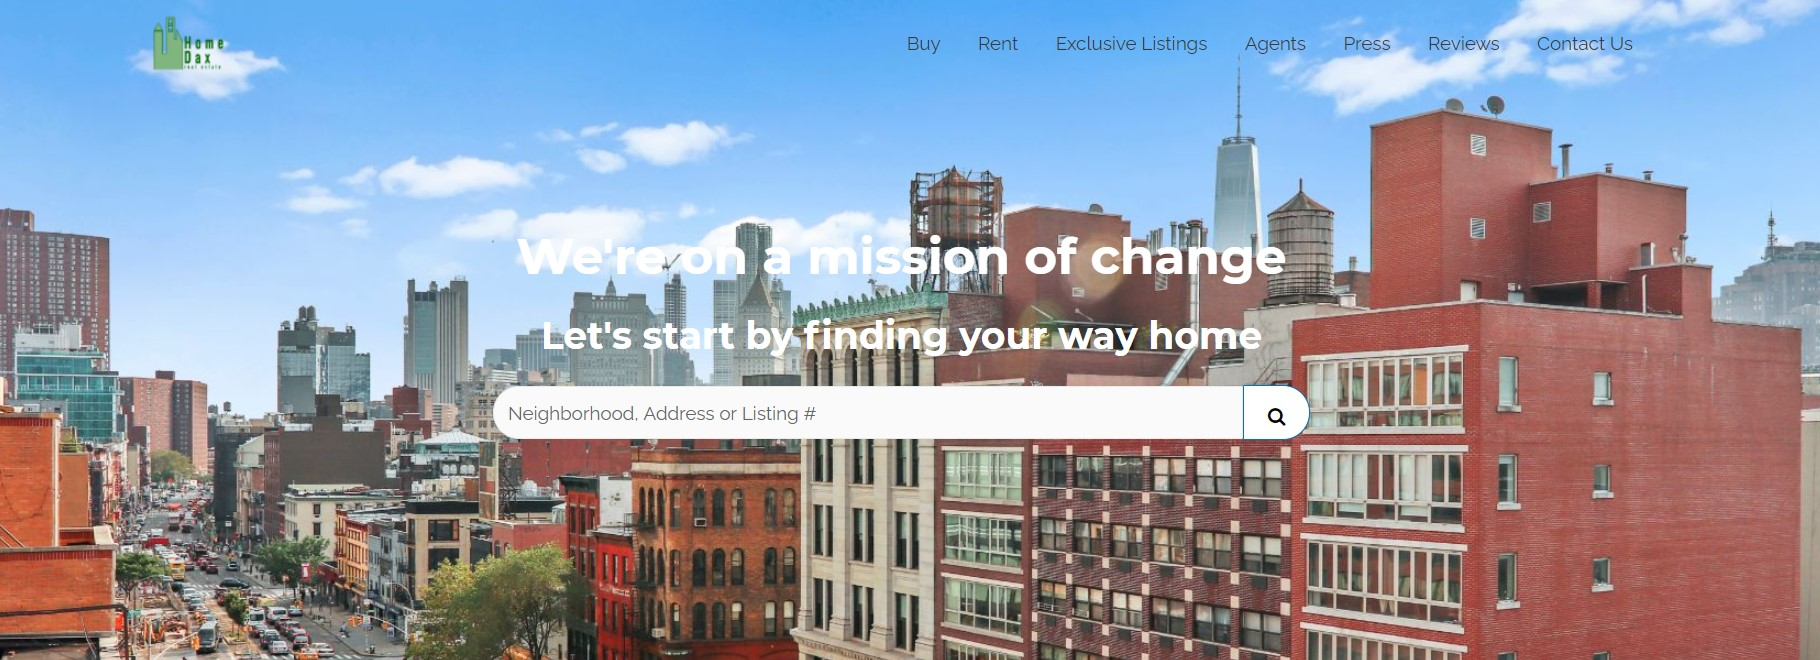 homedax real estate agent in new york